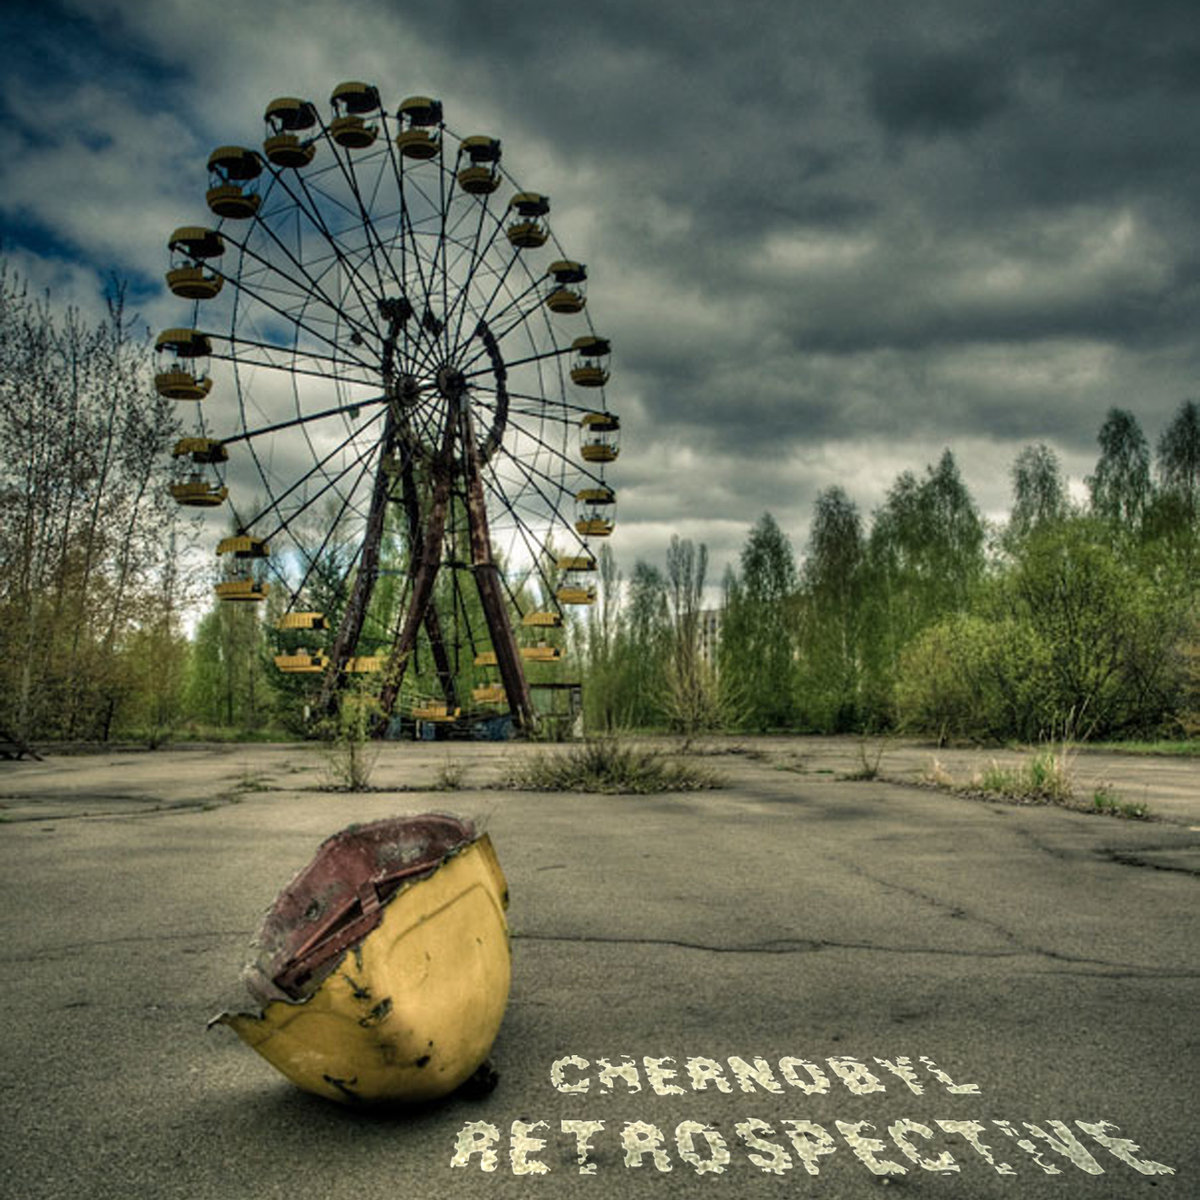 Fox - Epilogue @ 'Various Artists - Chernobyl Retrospective' album (electronic, ambient)